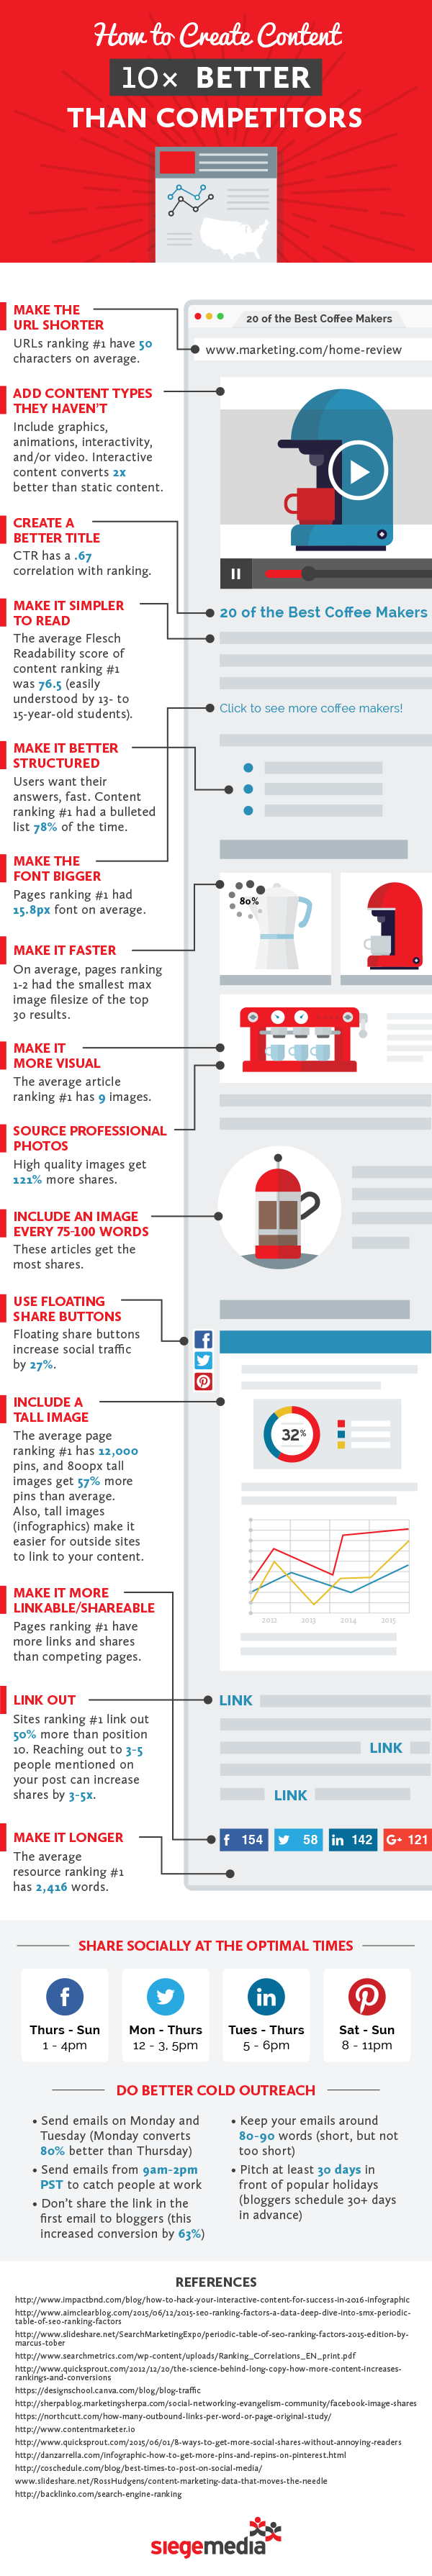 The anatomy of content that ranks NO. 1 - infographic